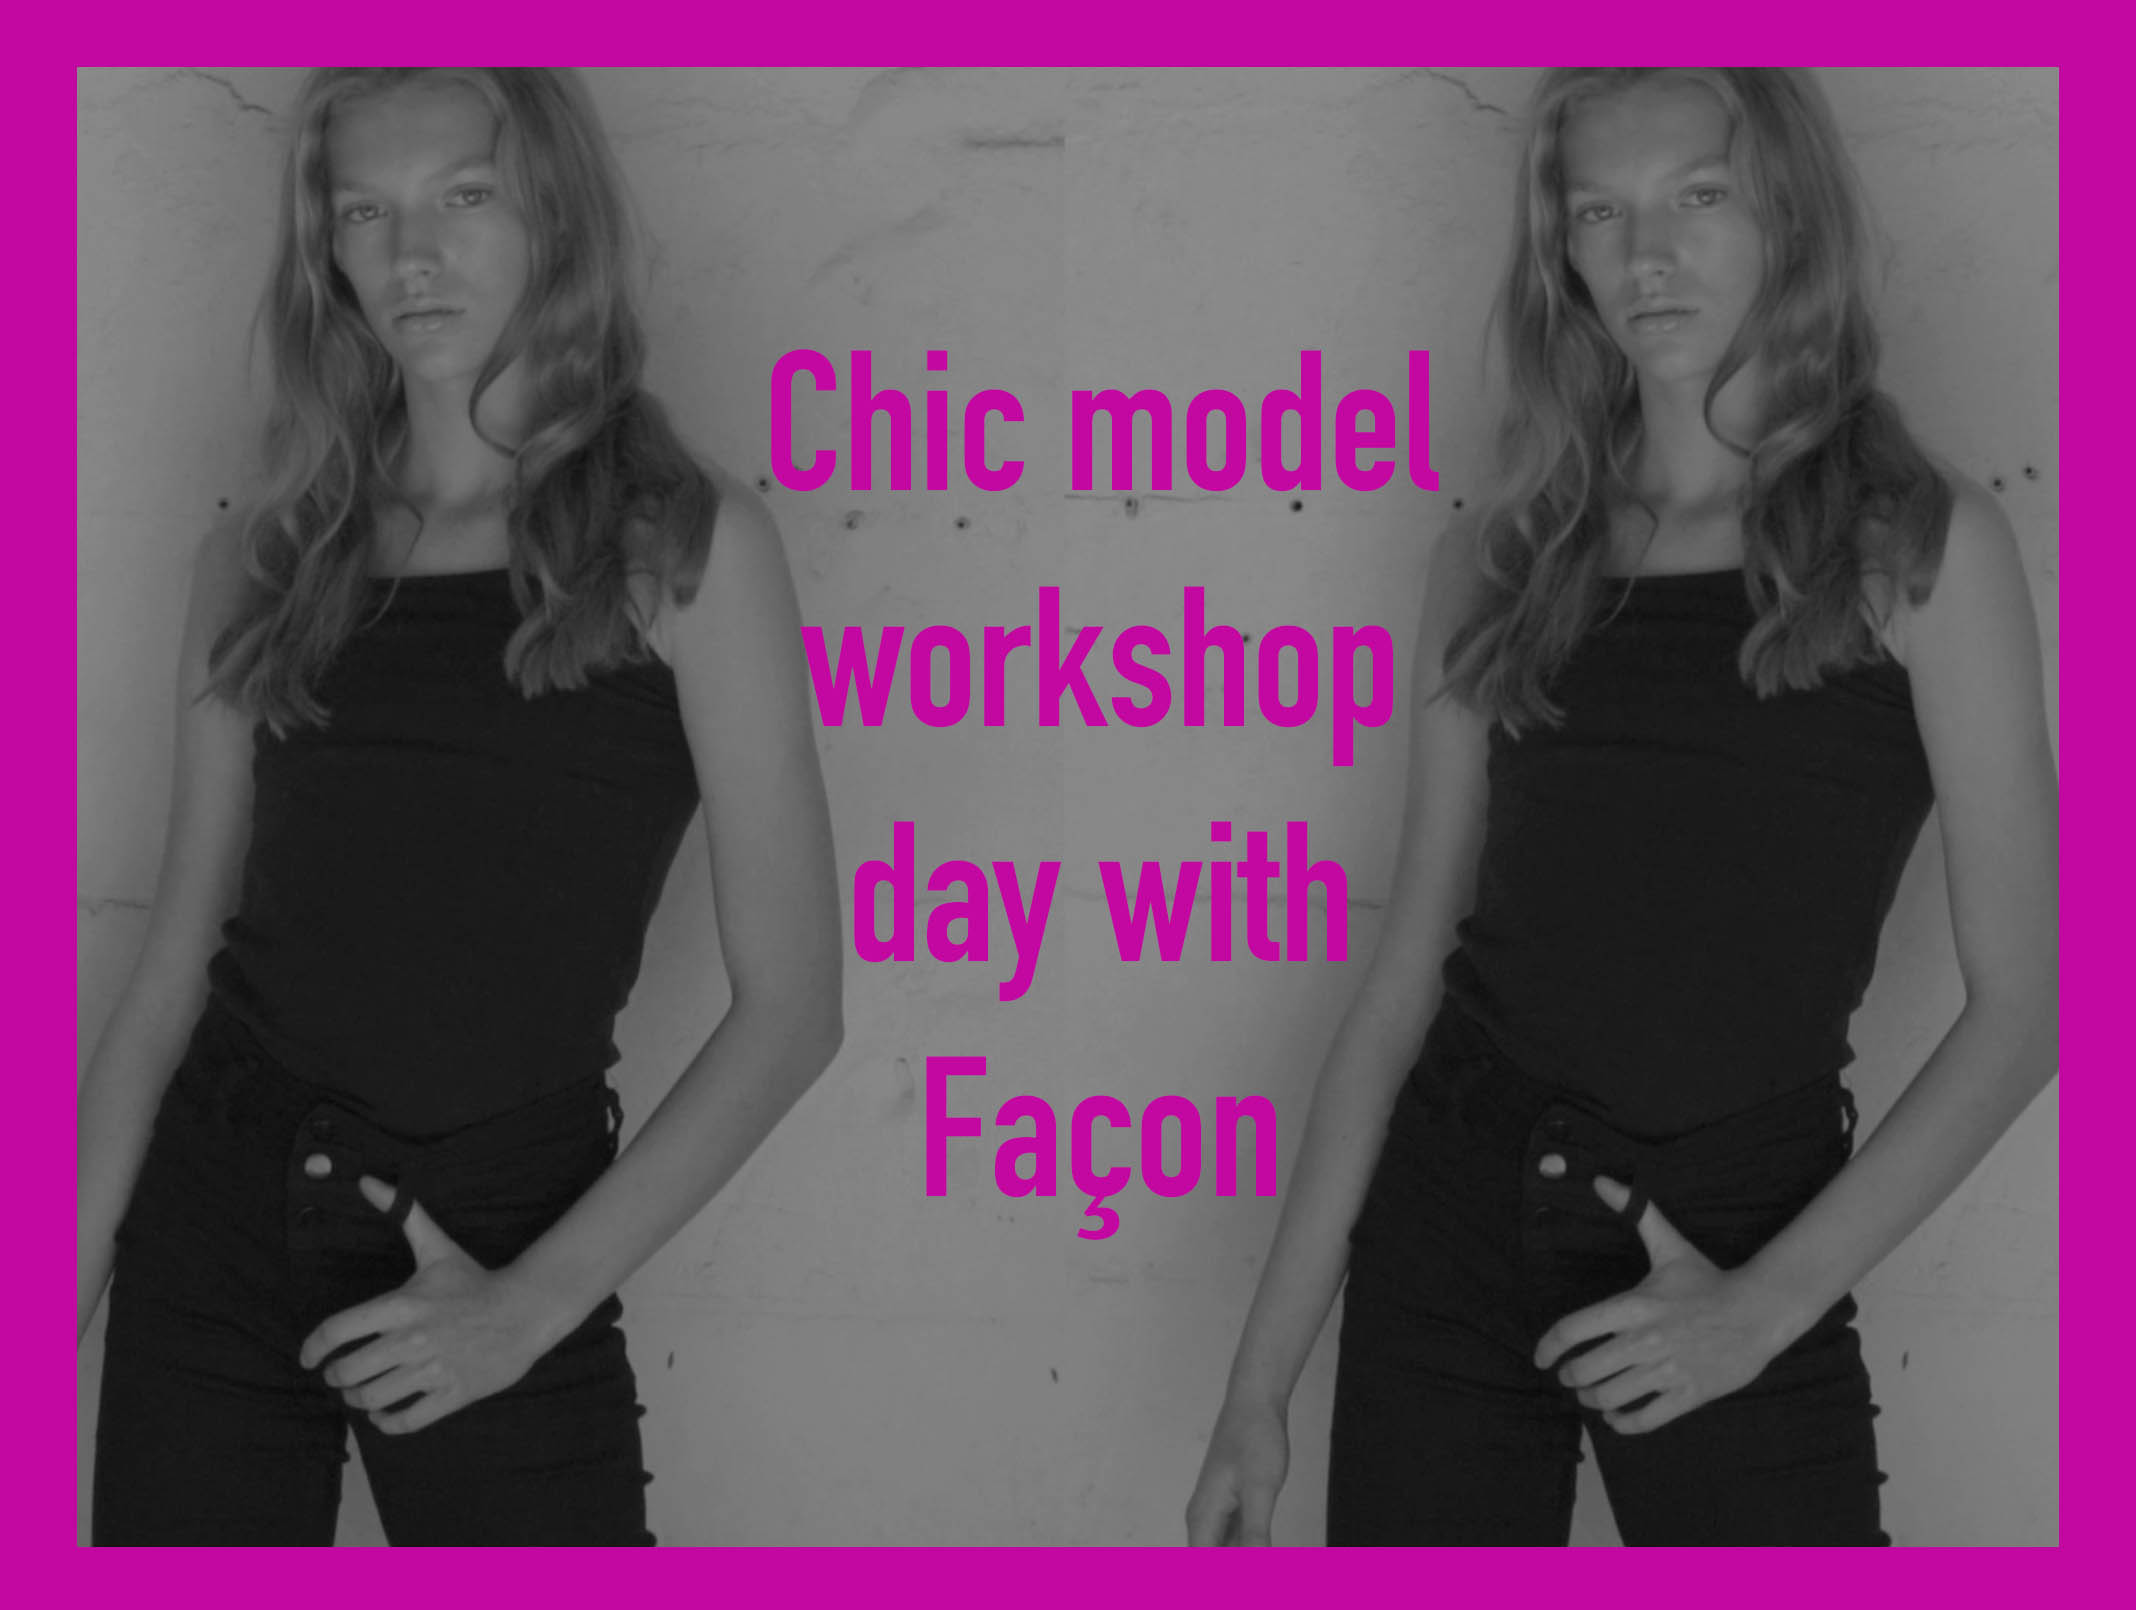 CHIC MODEL WORKSHOP AT FAÇON